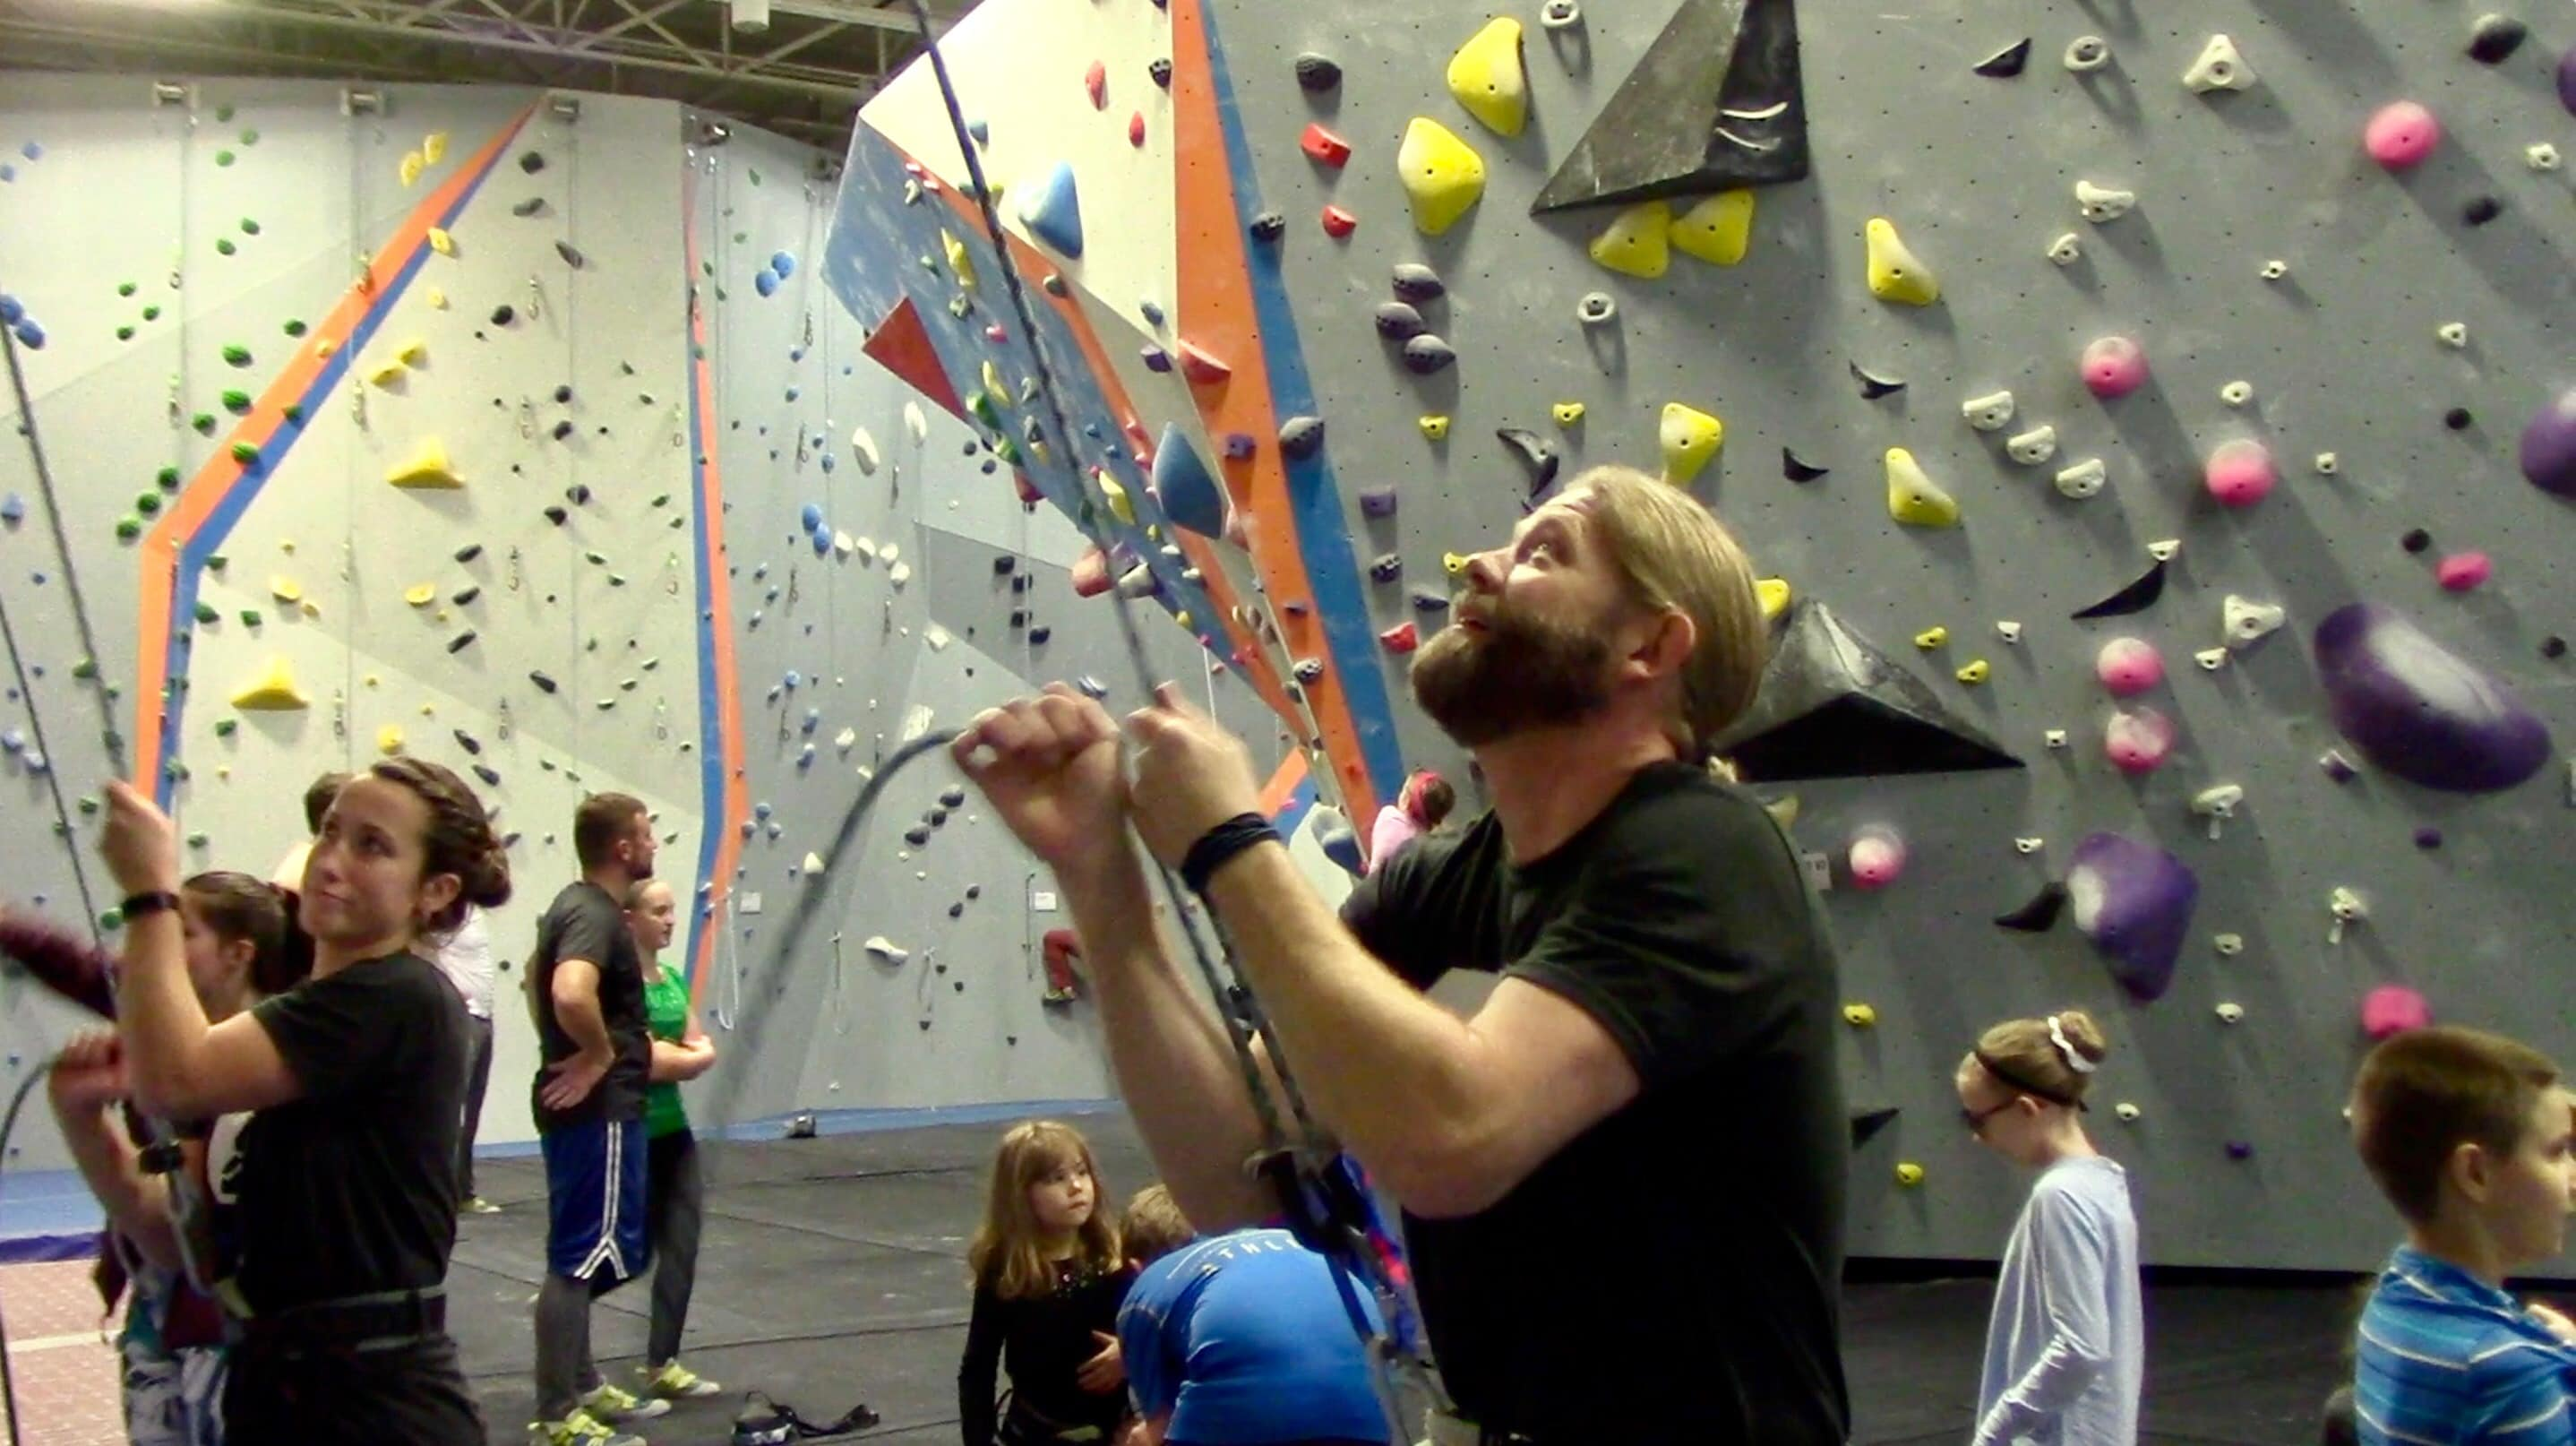 Greg Sommer instructing a rock climbing course at Syracuse's Central Rock Gym.